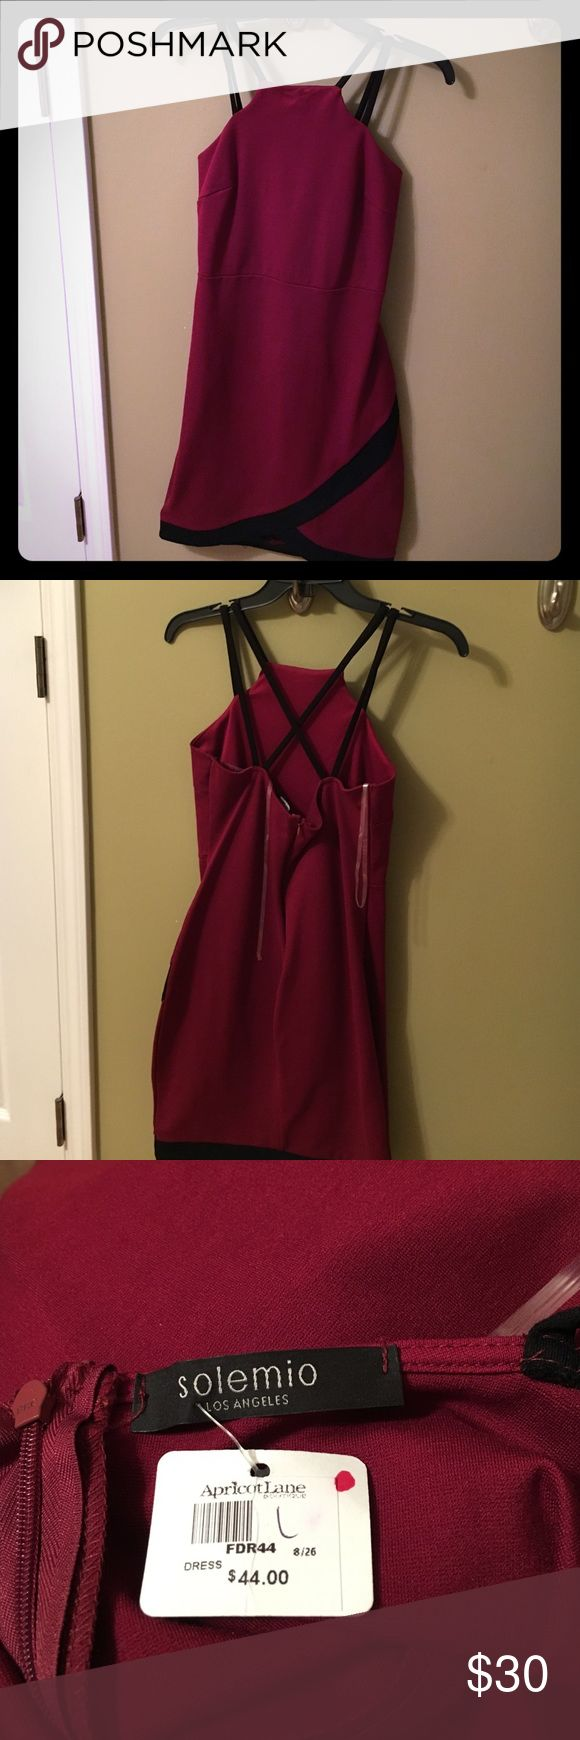 "Apricot lane dress See tag. Falls above the knees. The color is more wine or burgundy than ""red"" solemio  Dresses Mini"